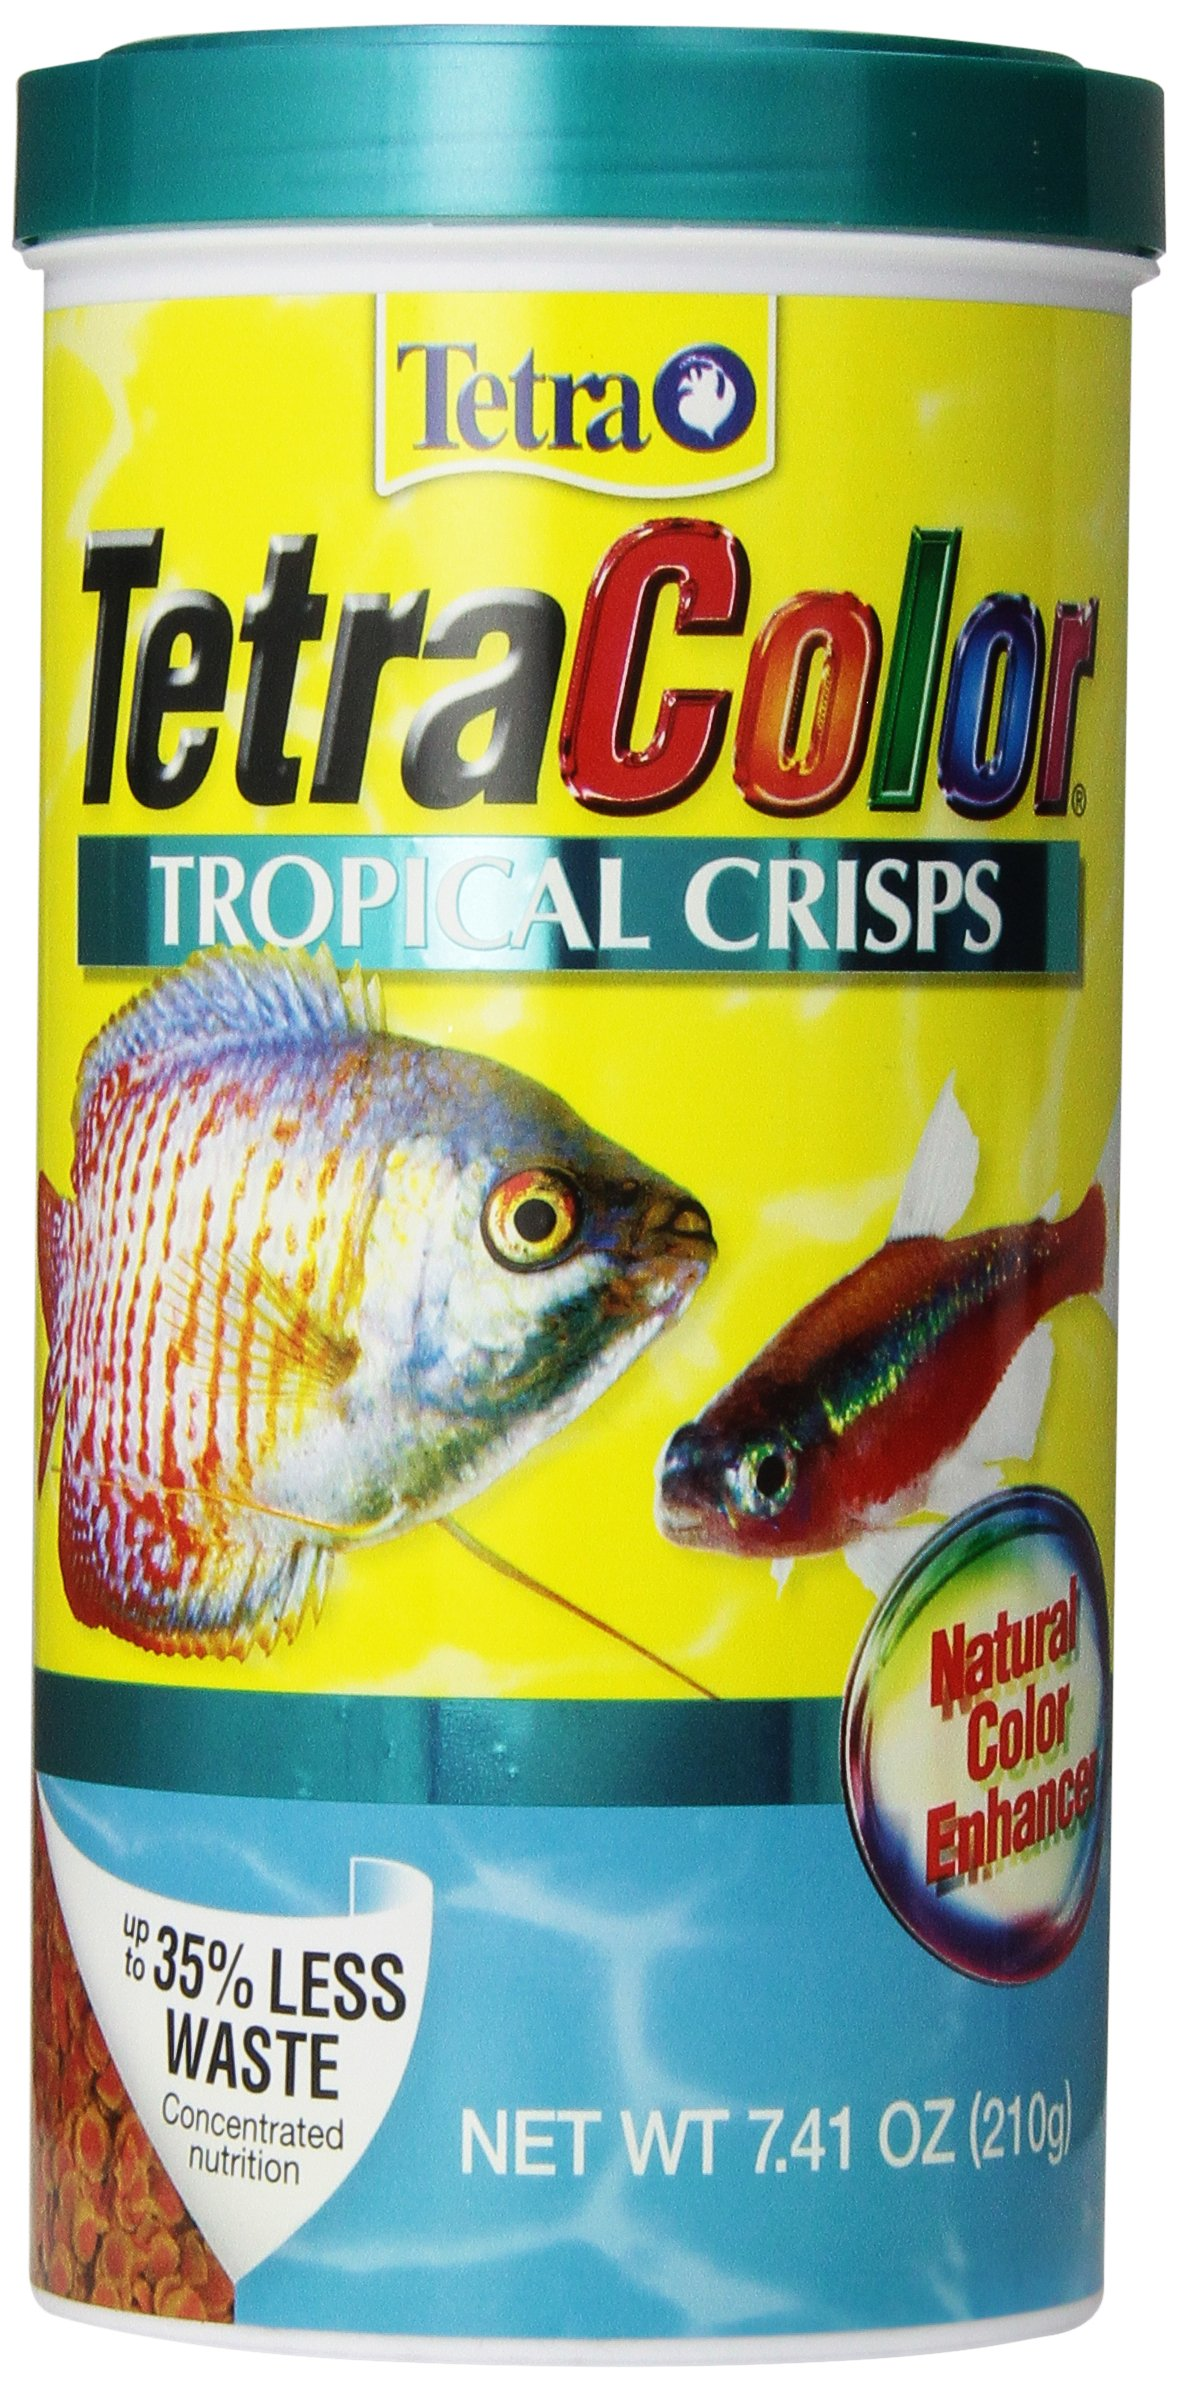 TetraColor Tropical Crisps Fish Food, 7.41 Ounces, With Natural Color Enhancer by Tetra